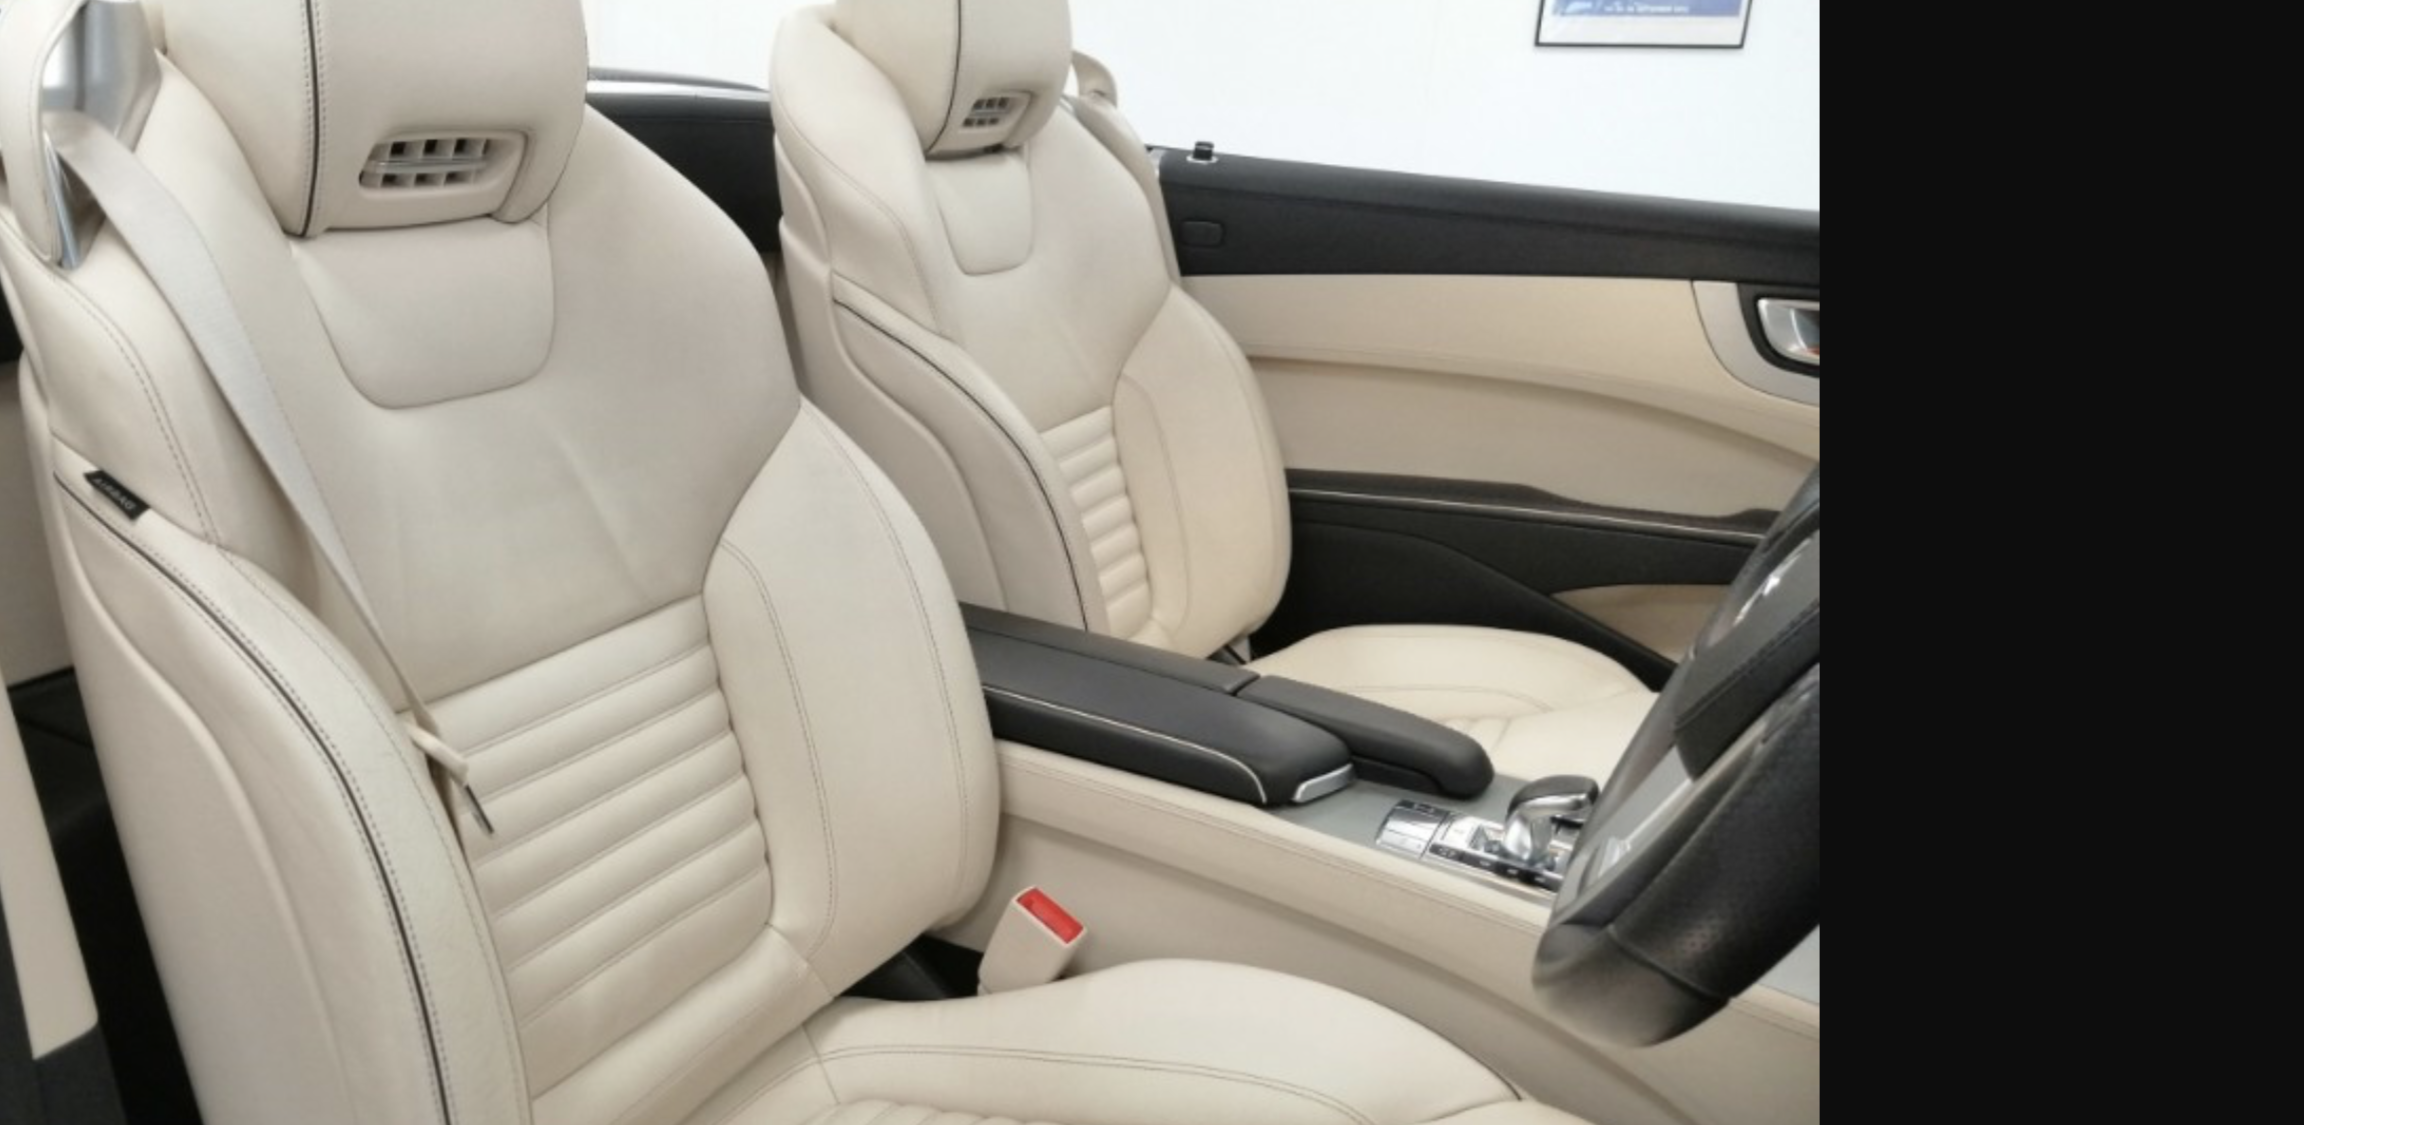 2013 SOLD - MERCEDES BENZ 350SL SPORT-AMG SPEC- SOLD For Sale (picture 4 of 6)